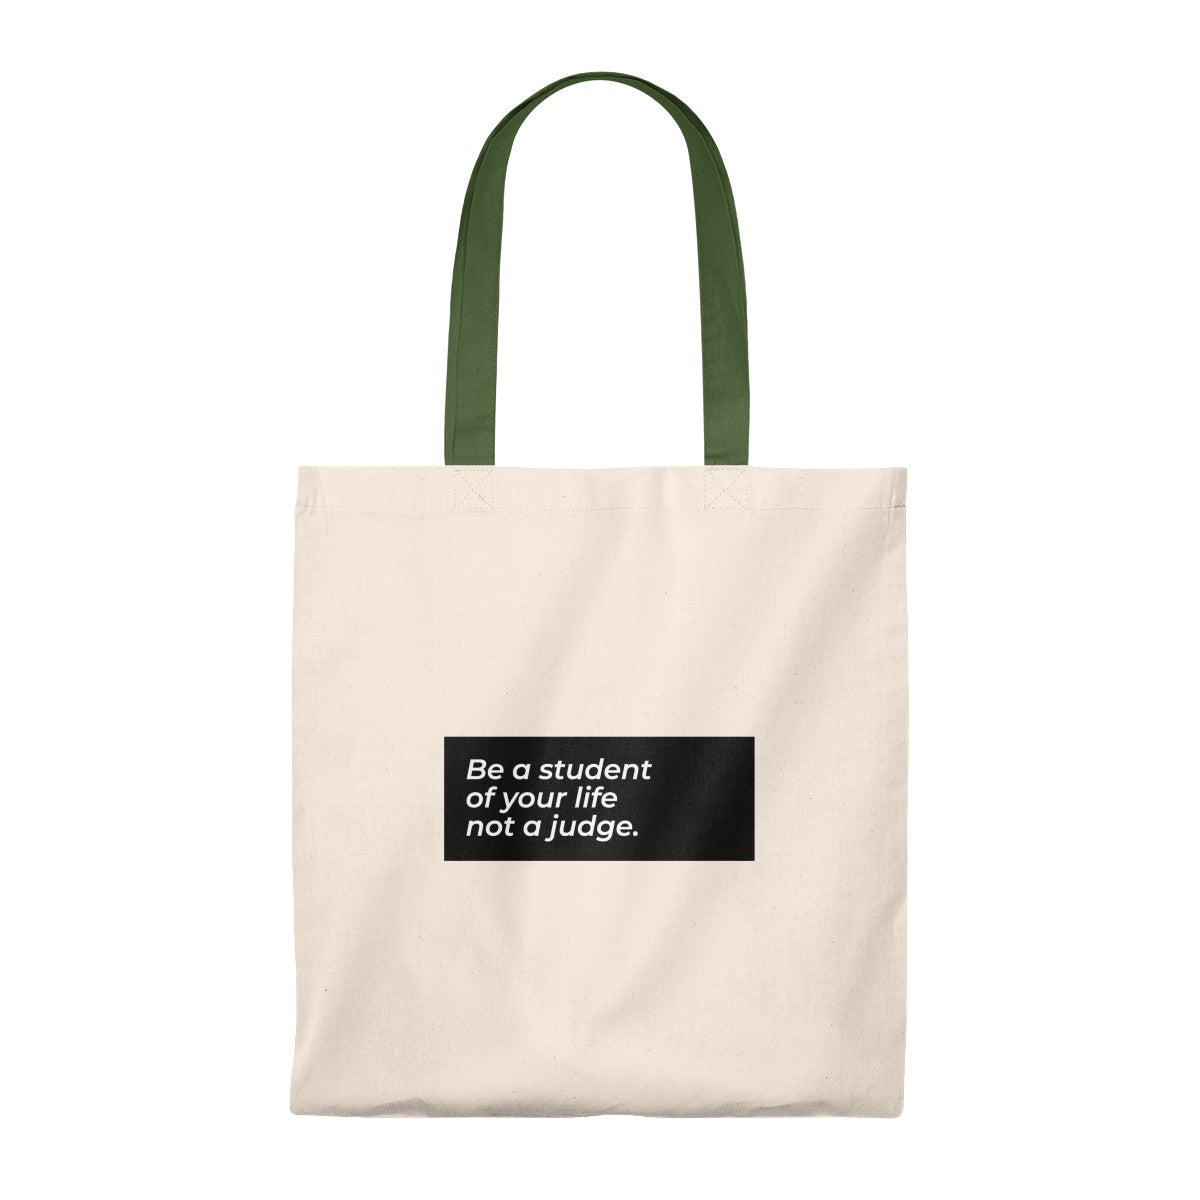 Be A Student And Not A Judge Of Your Life Tote Bag - Vintage